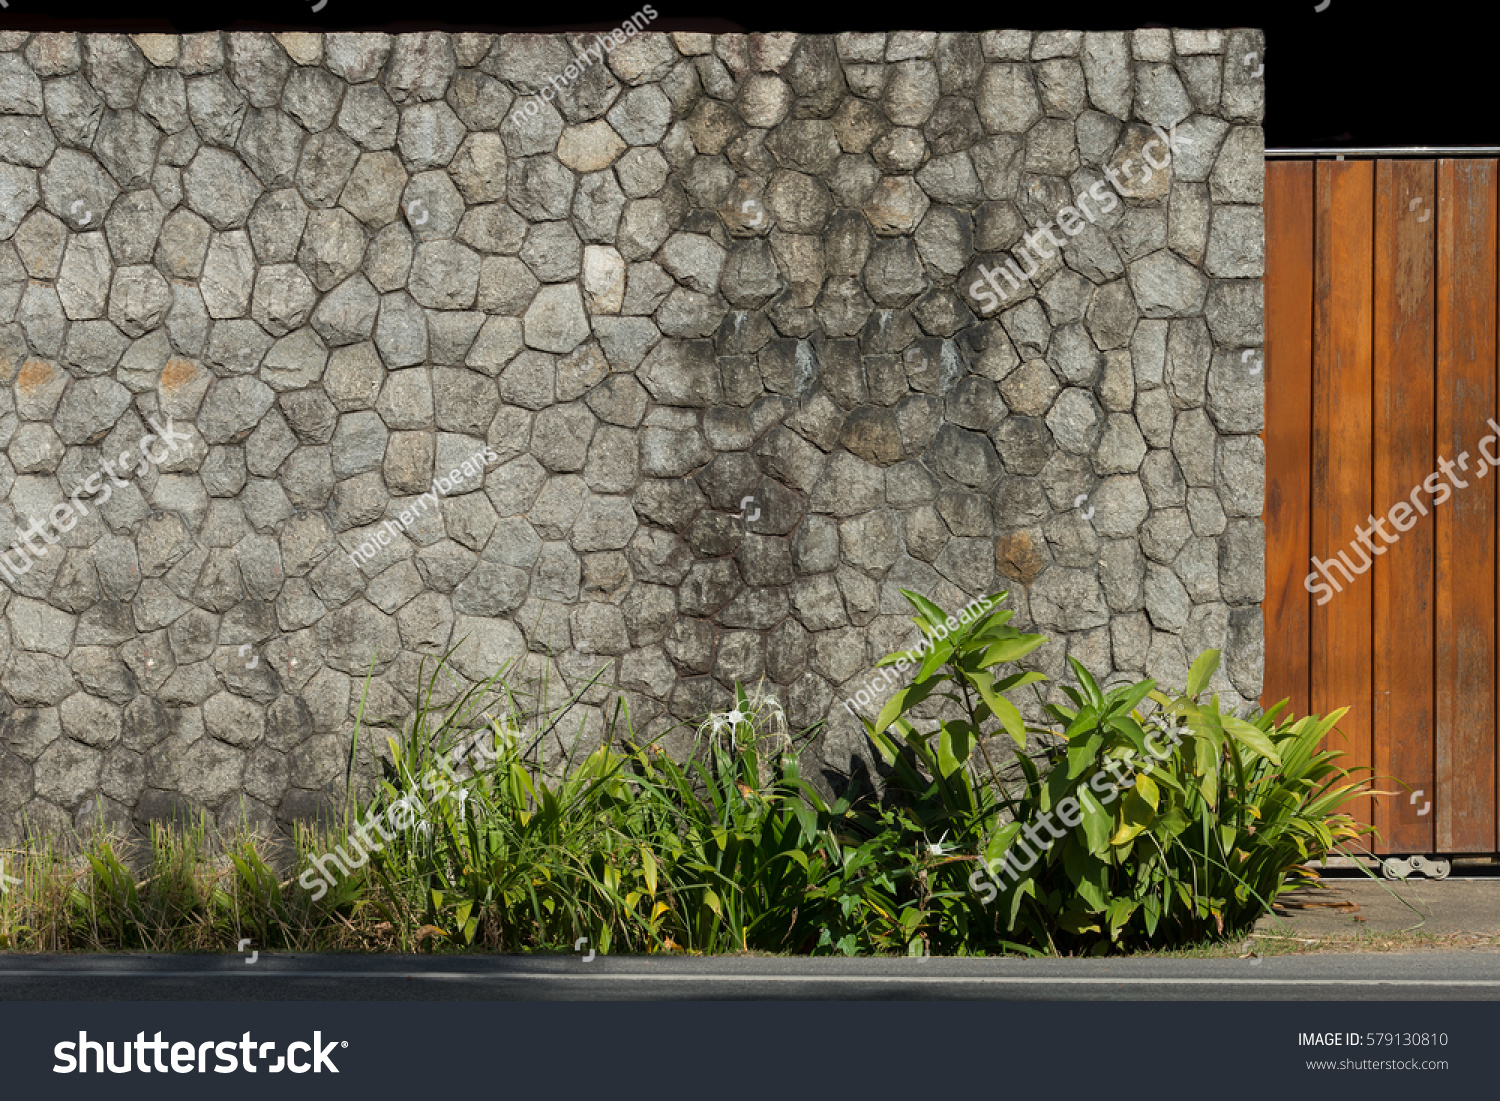 Exterior architecture stone wall texture background stock for Exterior background